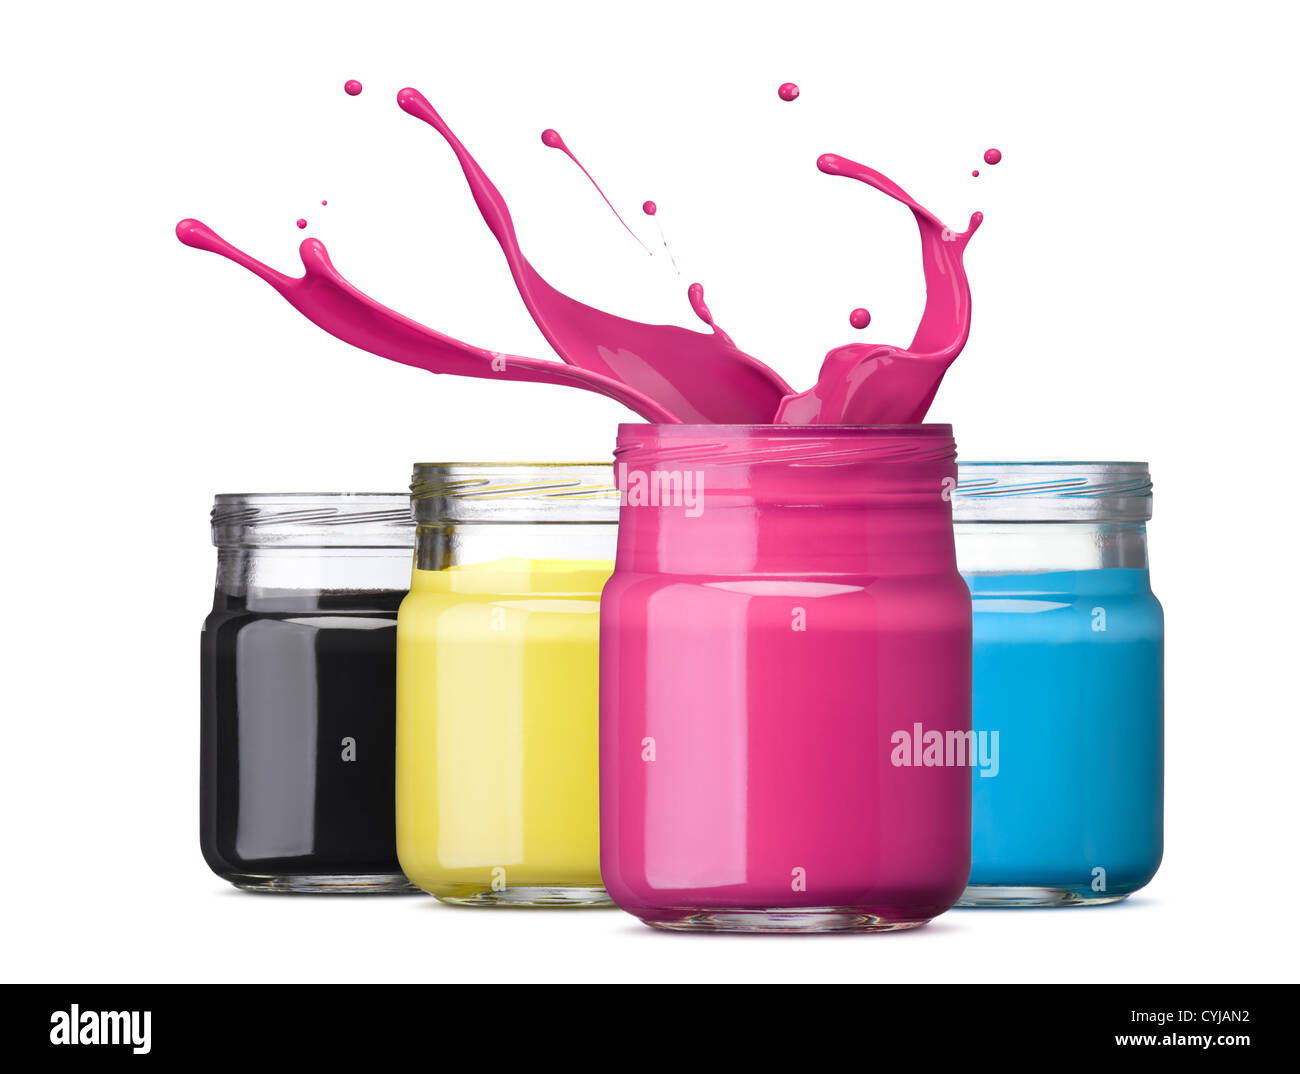 bottles of ink in cmyk colors, magenta with splash - Stock Image